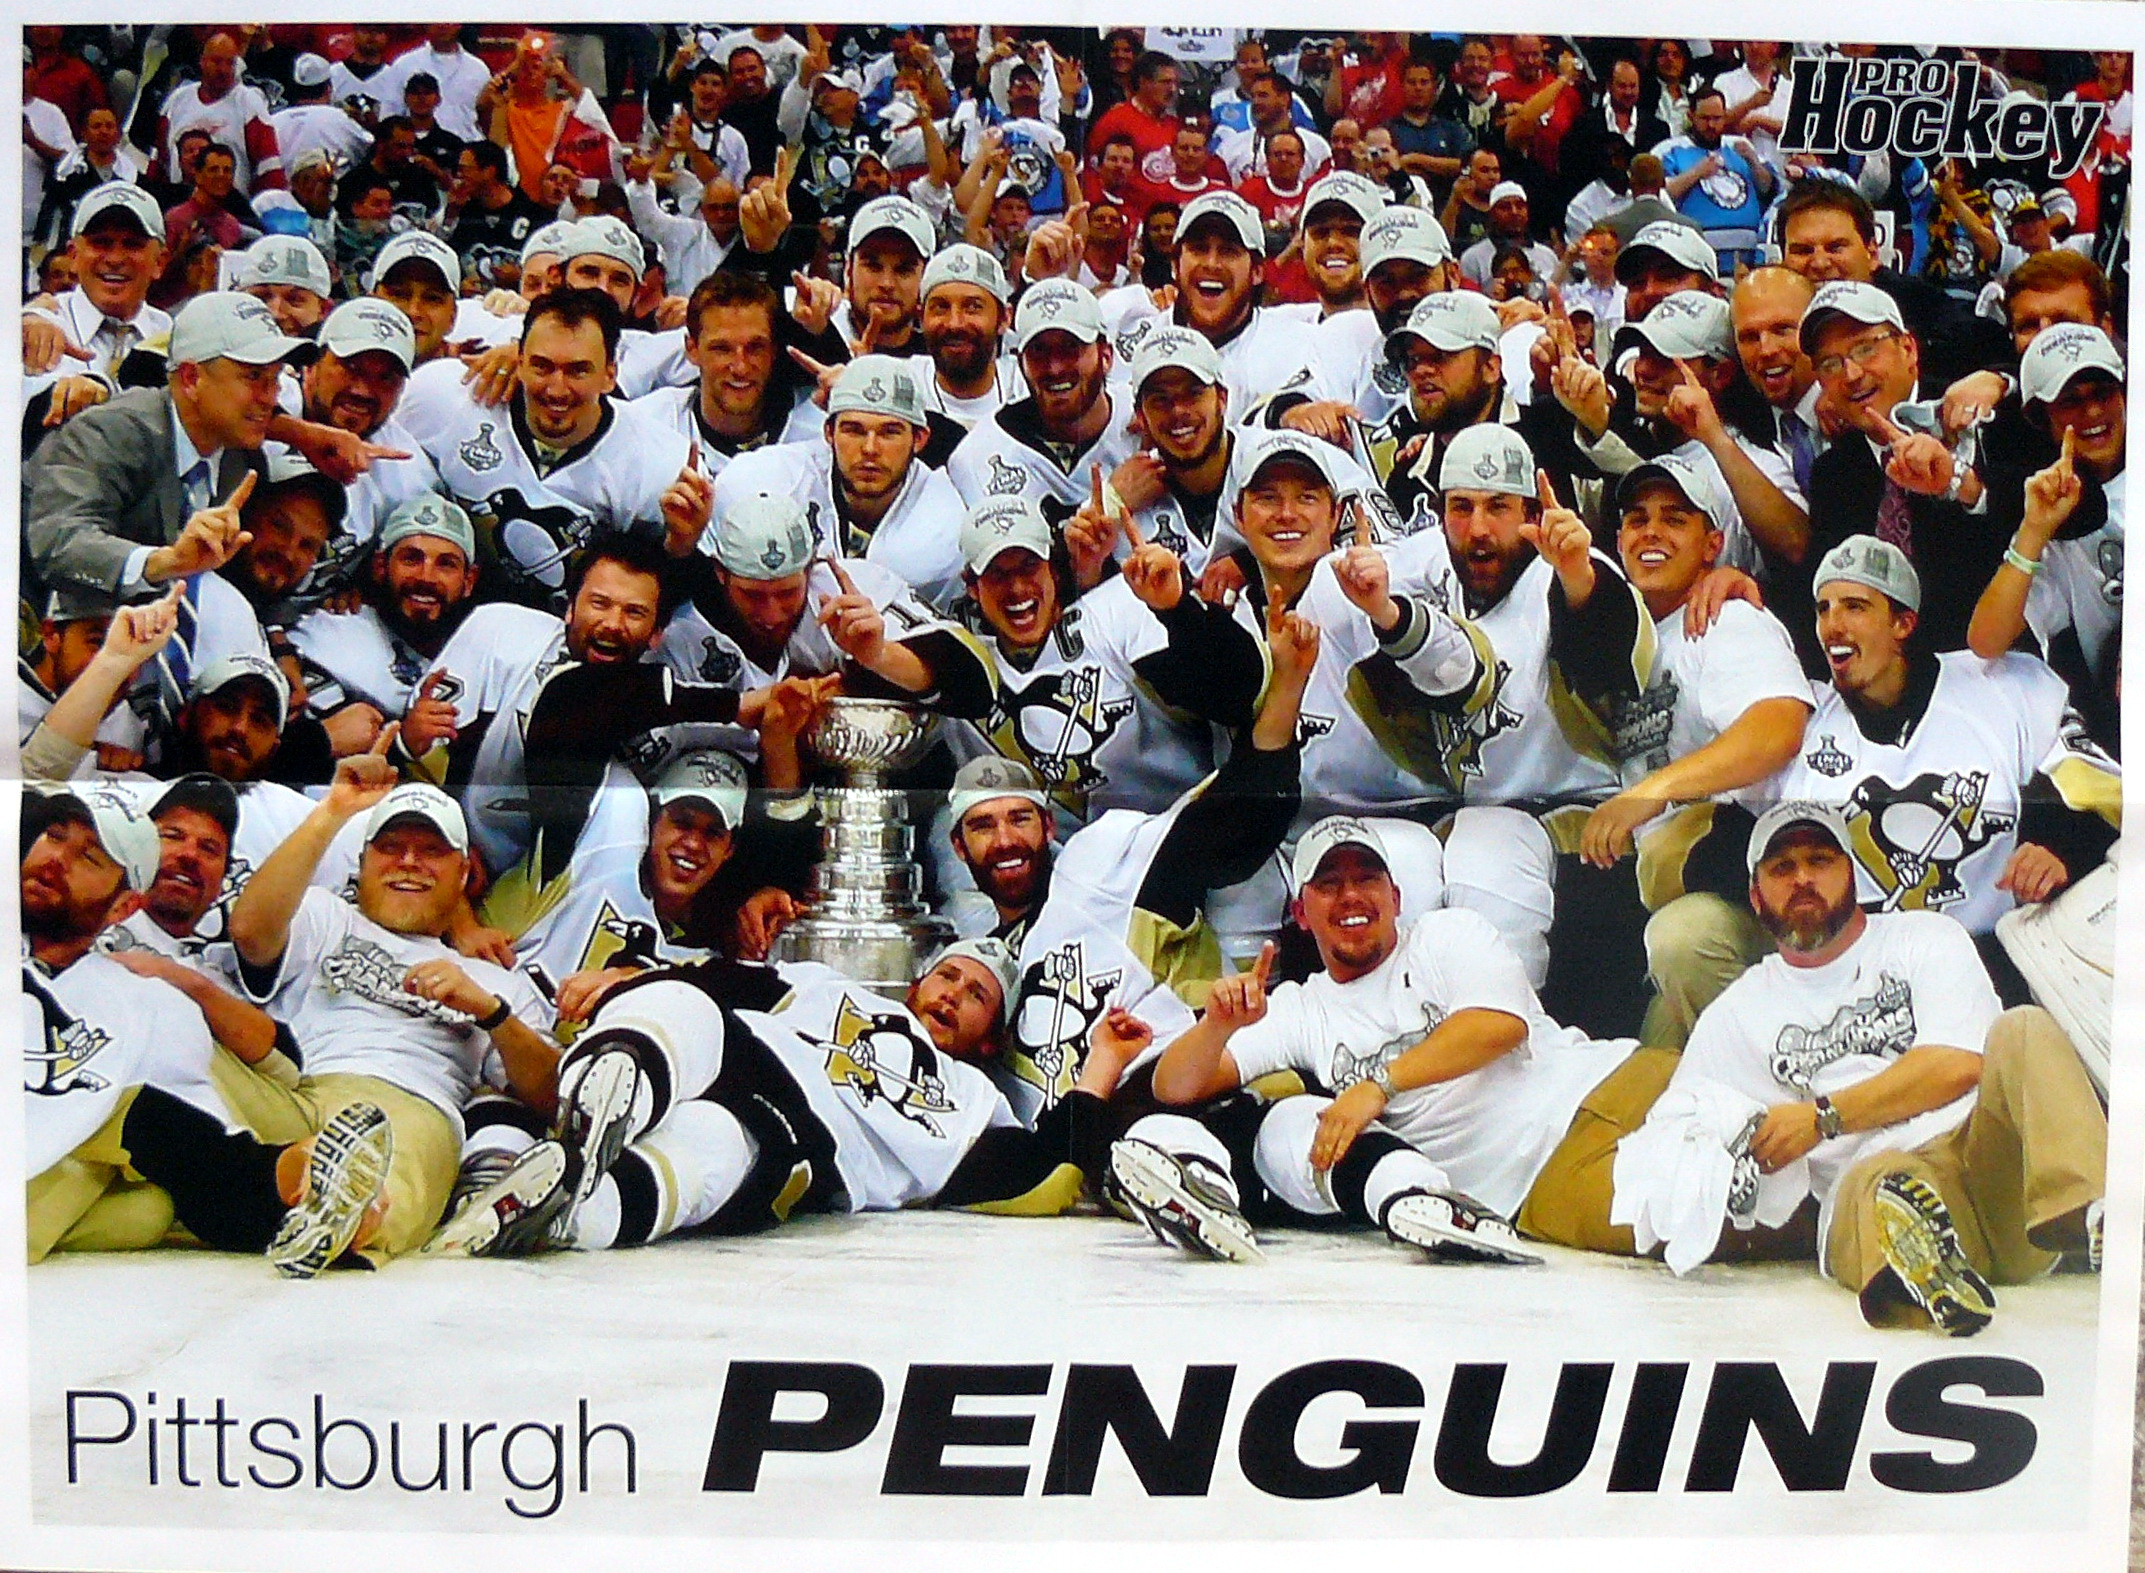 PITTSBURGH PENGUINS - Players cards since 1974 - 2011 | penguins ...